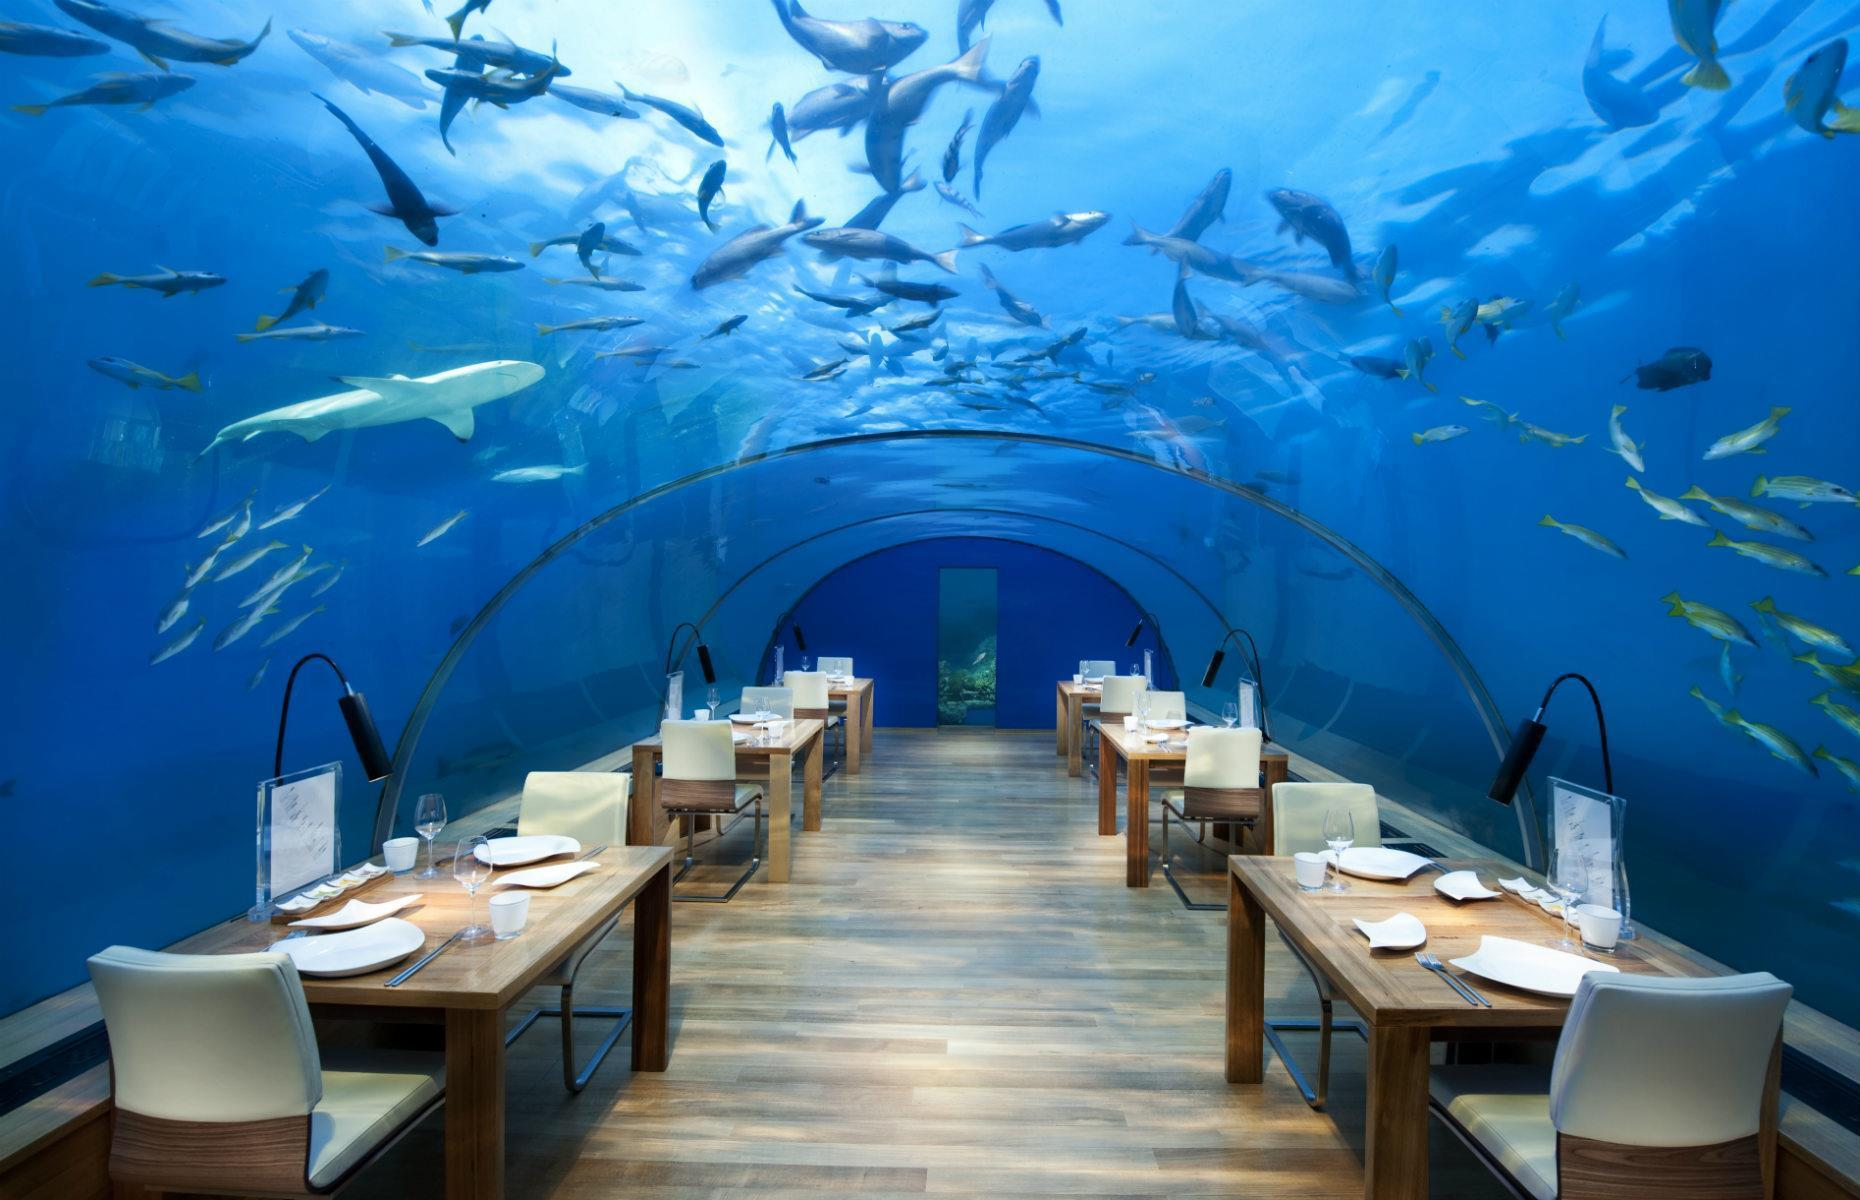 Slide 29 of 31: Built in 2005, this place set the benchmark for underwater luxury. At the Conrad Maldives Rangali Island's restaurant Ithaa, the world's first all-glass underwater restaurant, there's no need to worry about booking the best seat in the house – the panoramic windows ensure all 14 guests usually have a magnificent experience. Submerged 16 feet (5m) below sea level, this high-class restaurant promises sophisticated cuisine paired with once-in-a-lifetime ocean views. The Maldives is set to welcome back tourists during July 2020 and you can discover more countries reopening to tourists here.